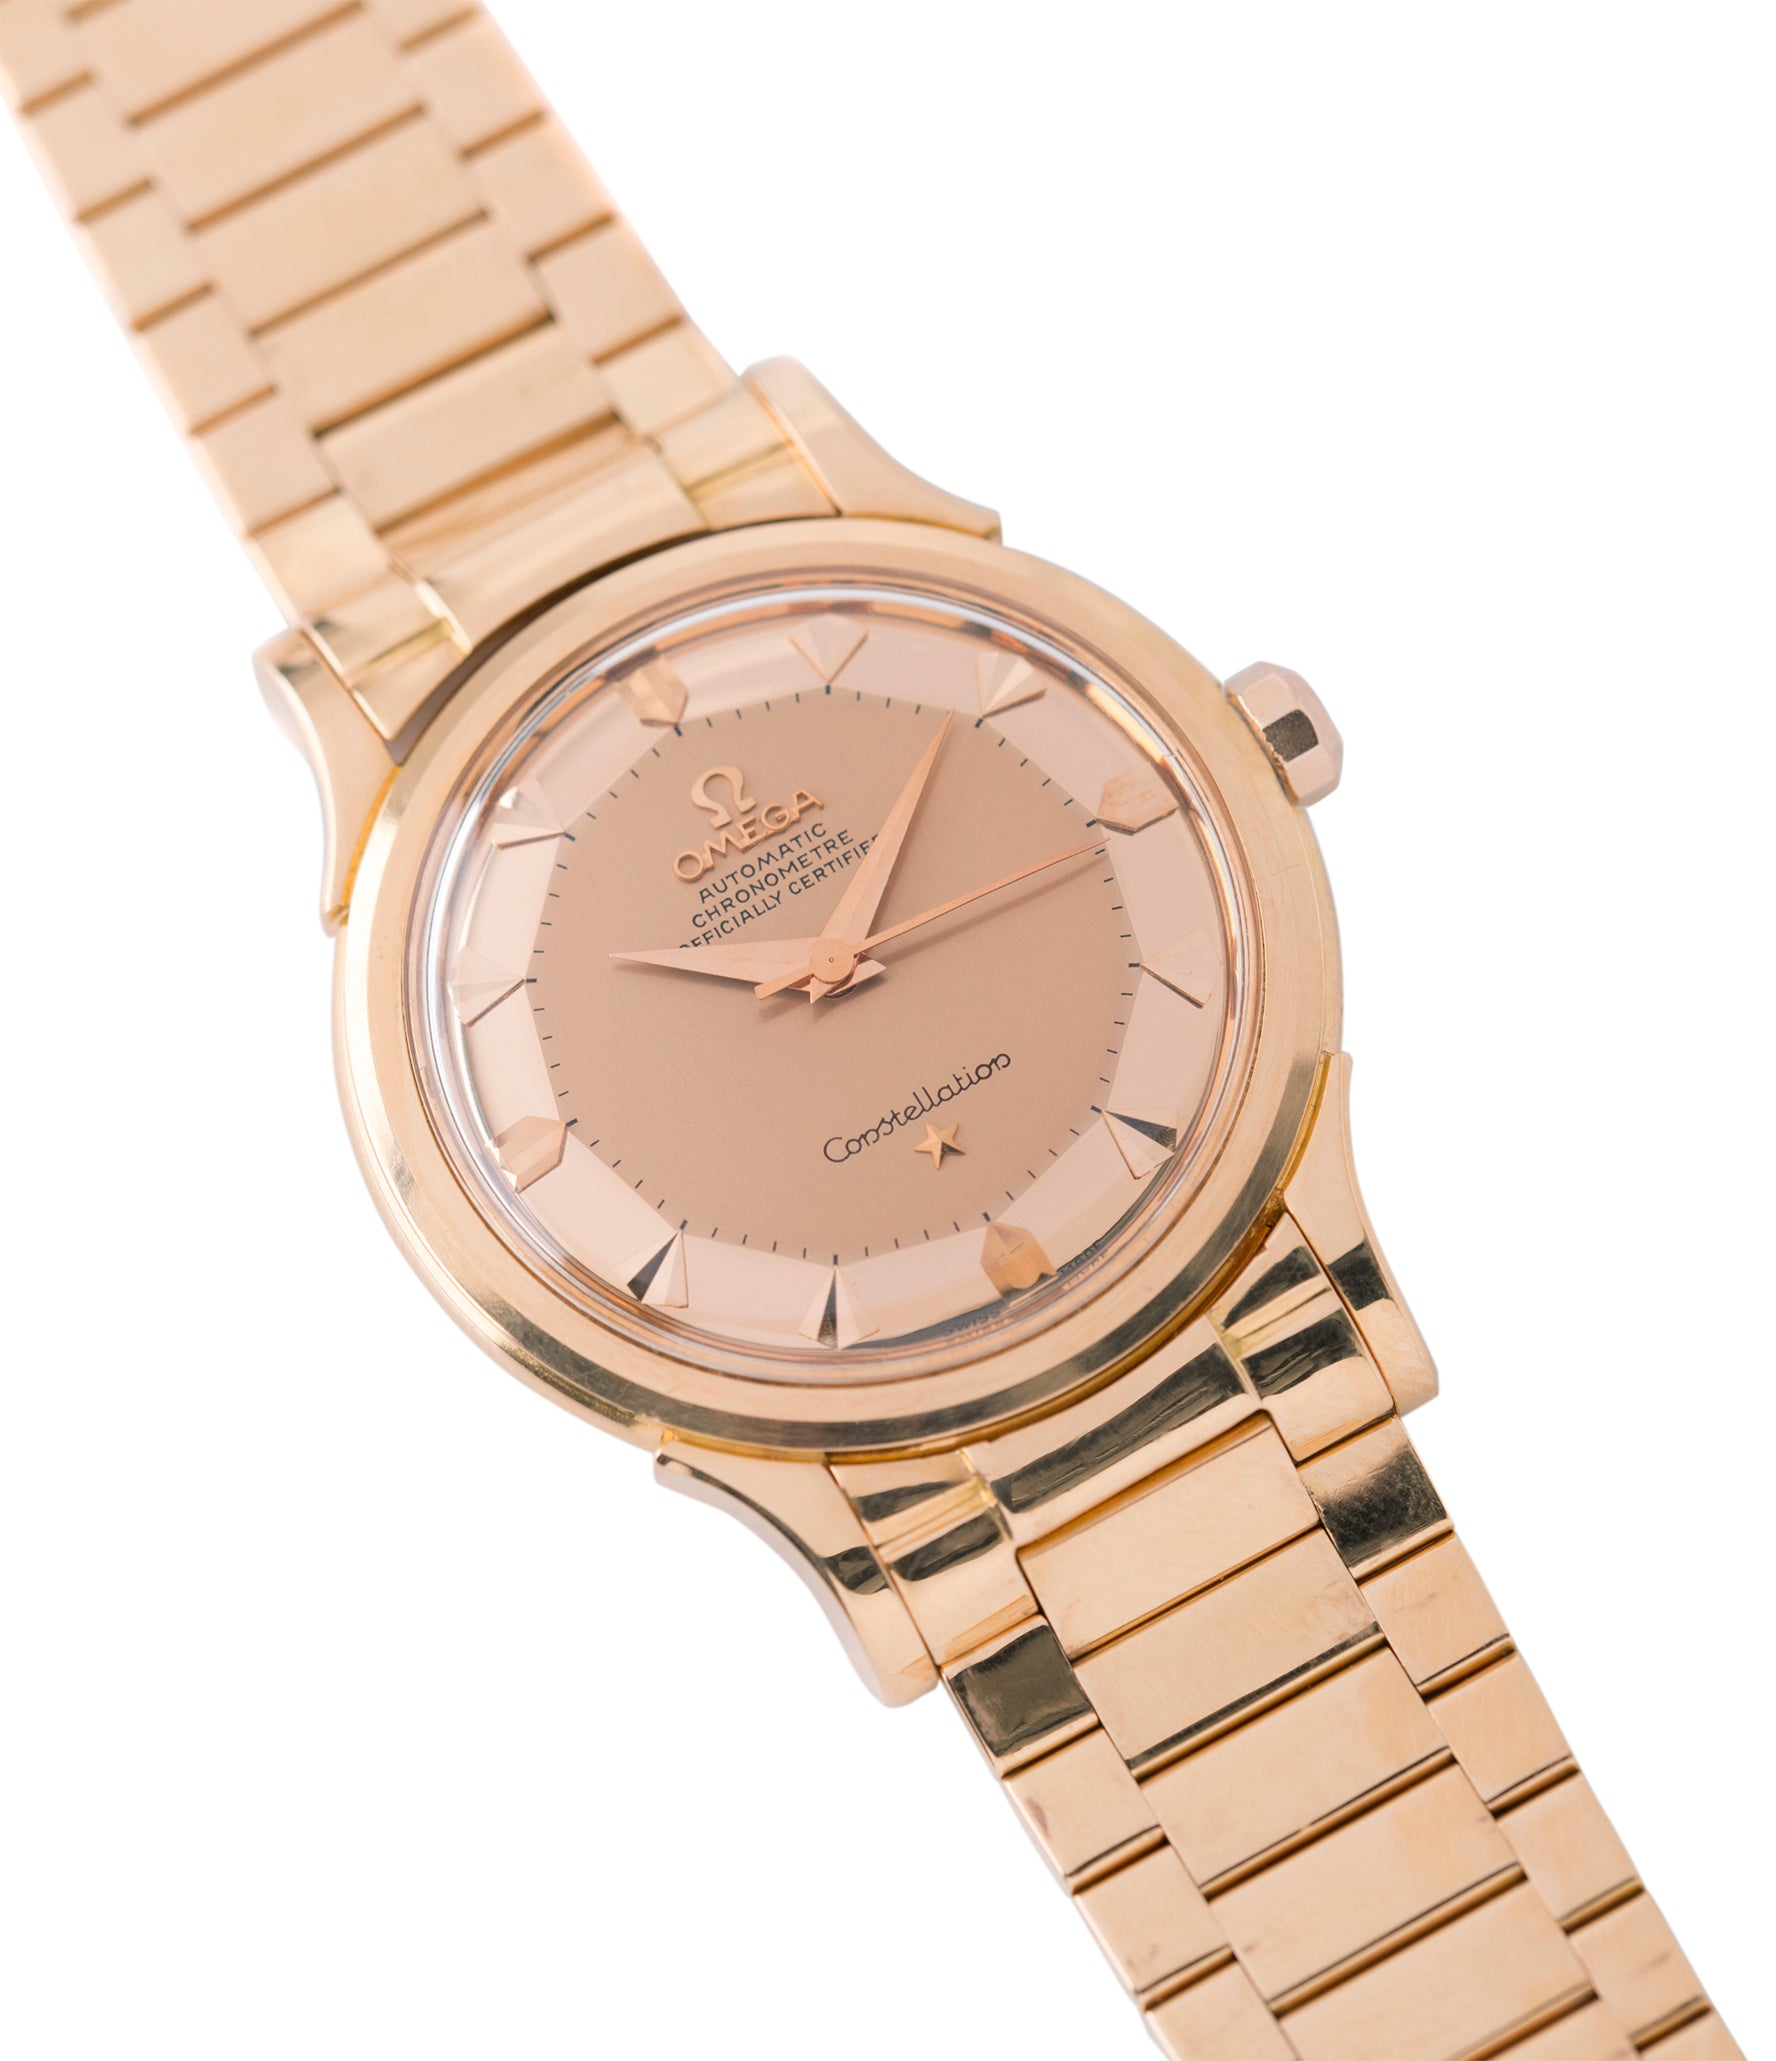 buying vintage Omega Constellation De Luxe 2799 yellow gold rare dress watch for sale online at A Collected Man London UK specialist of rare vintage watches